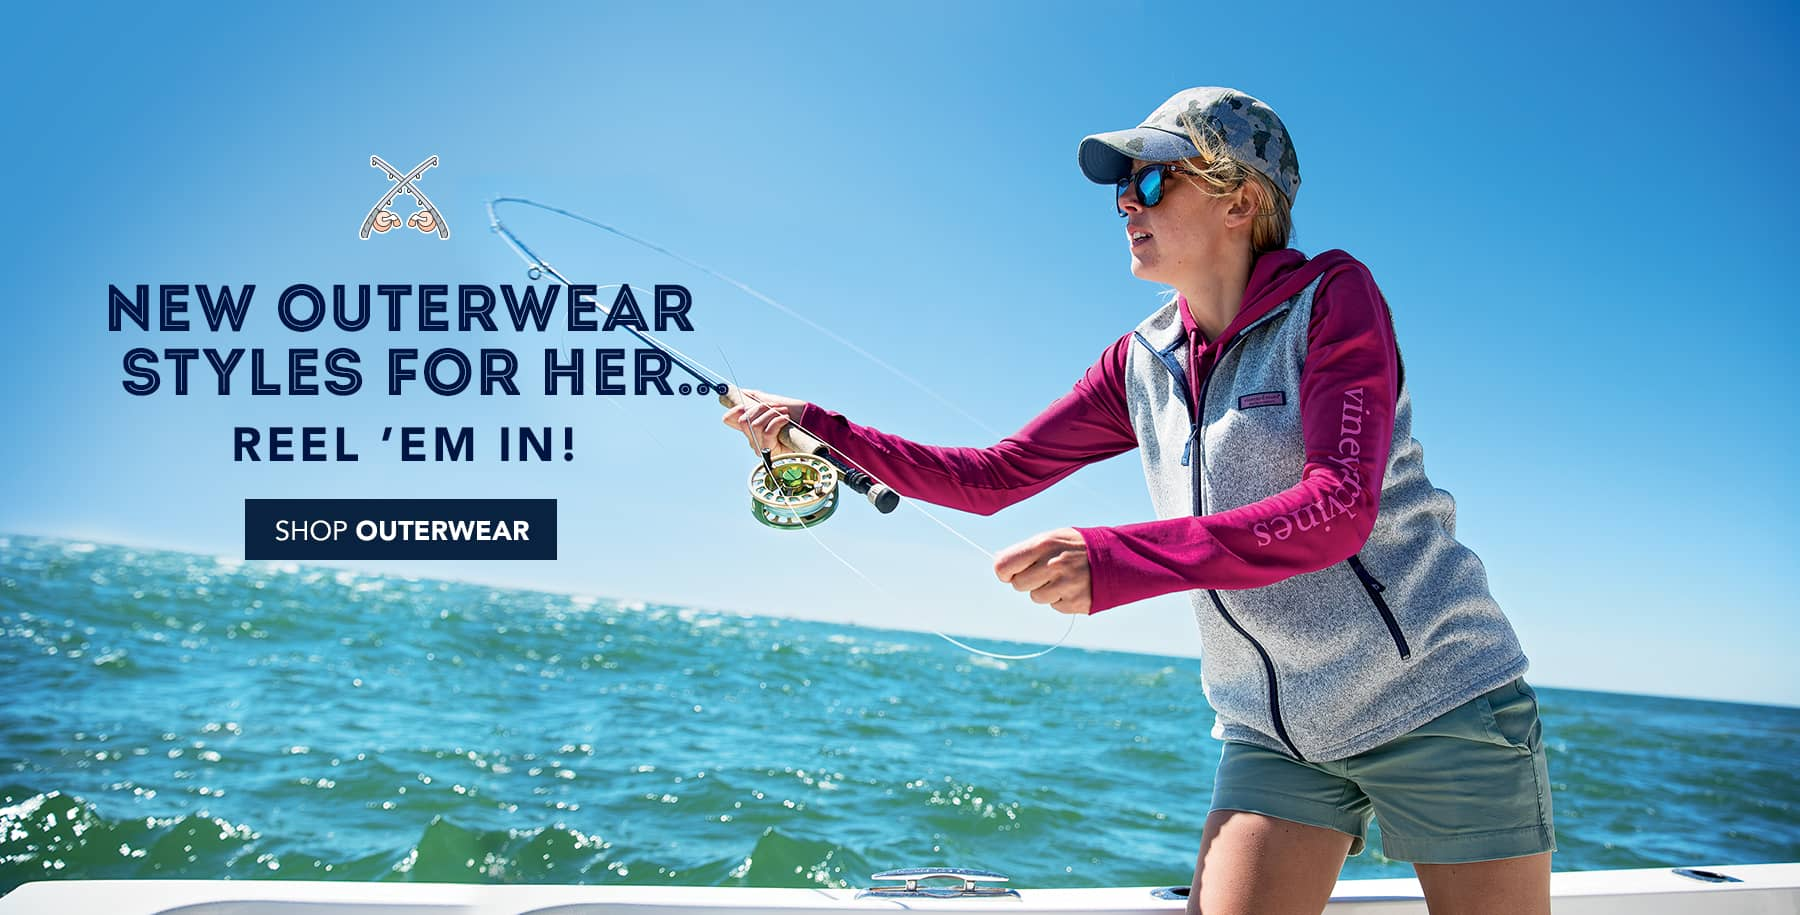 New Outerwear Styles for Her... Reel 'em in! Shop Women's Outerwear